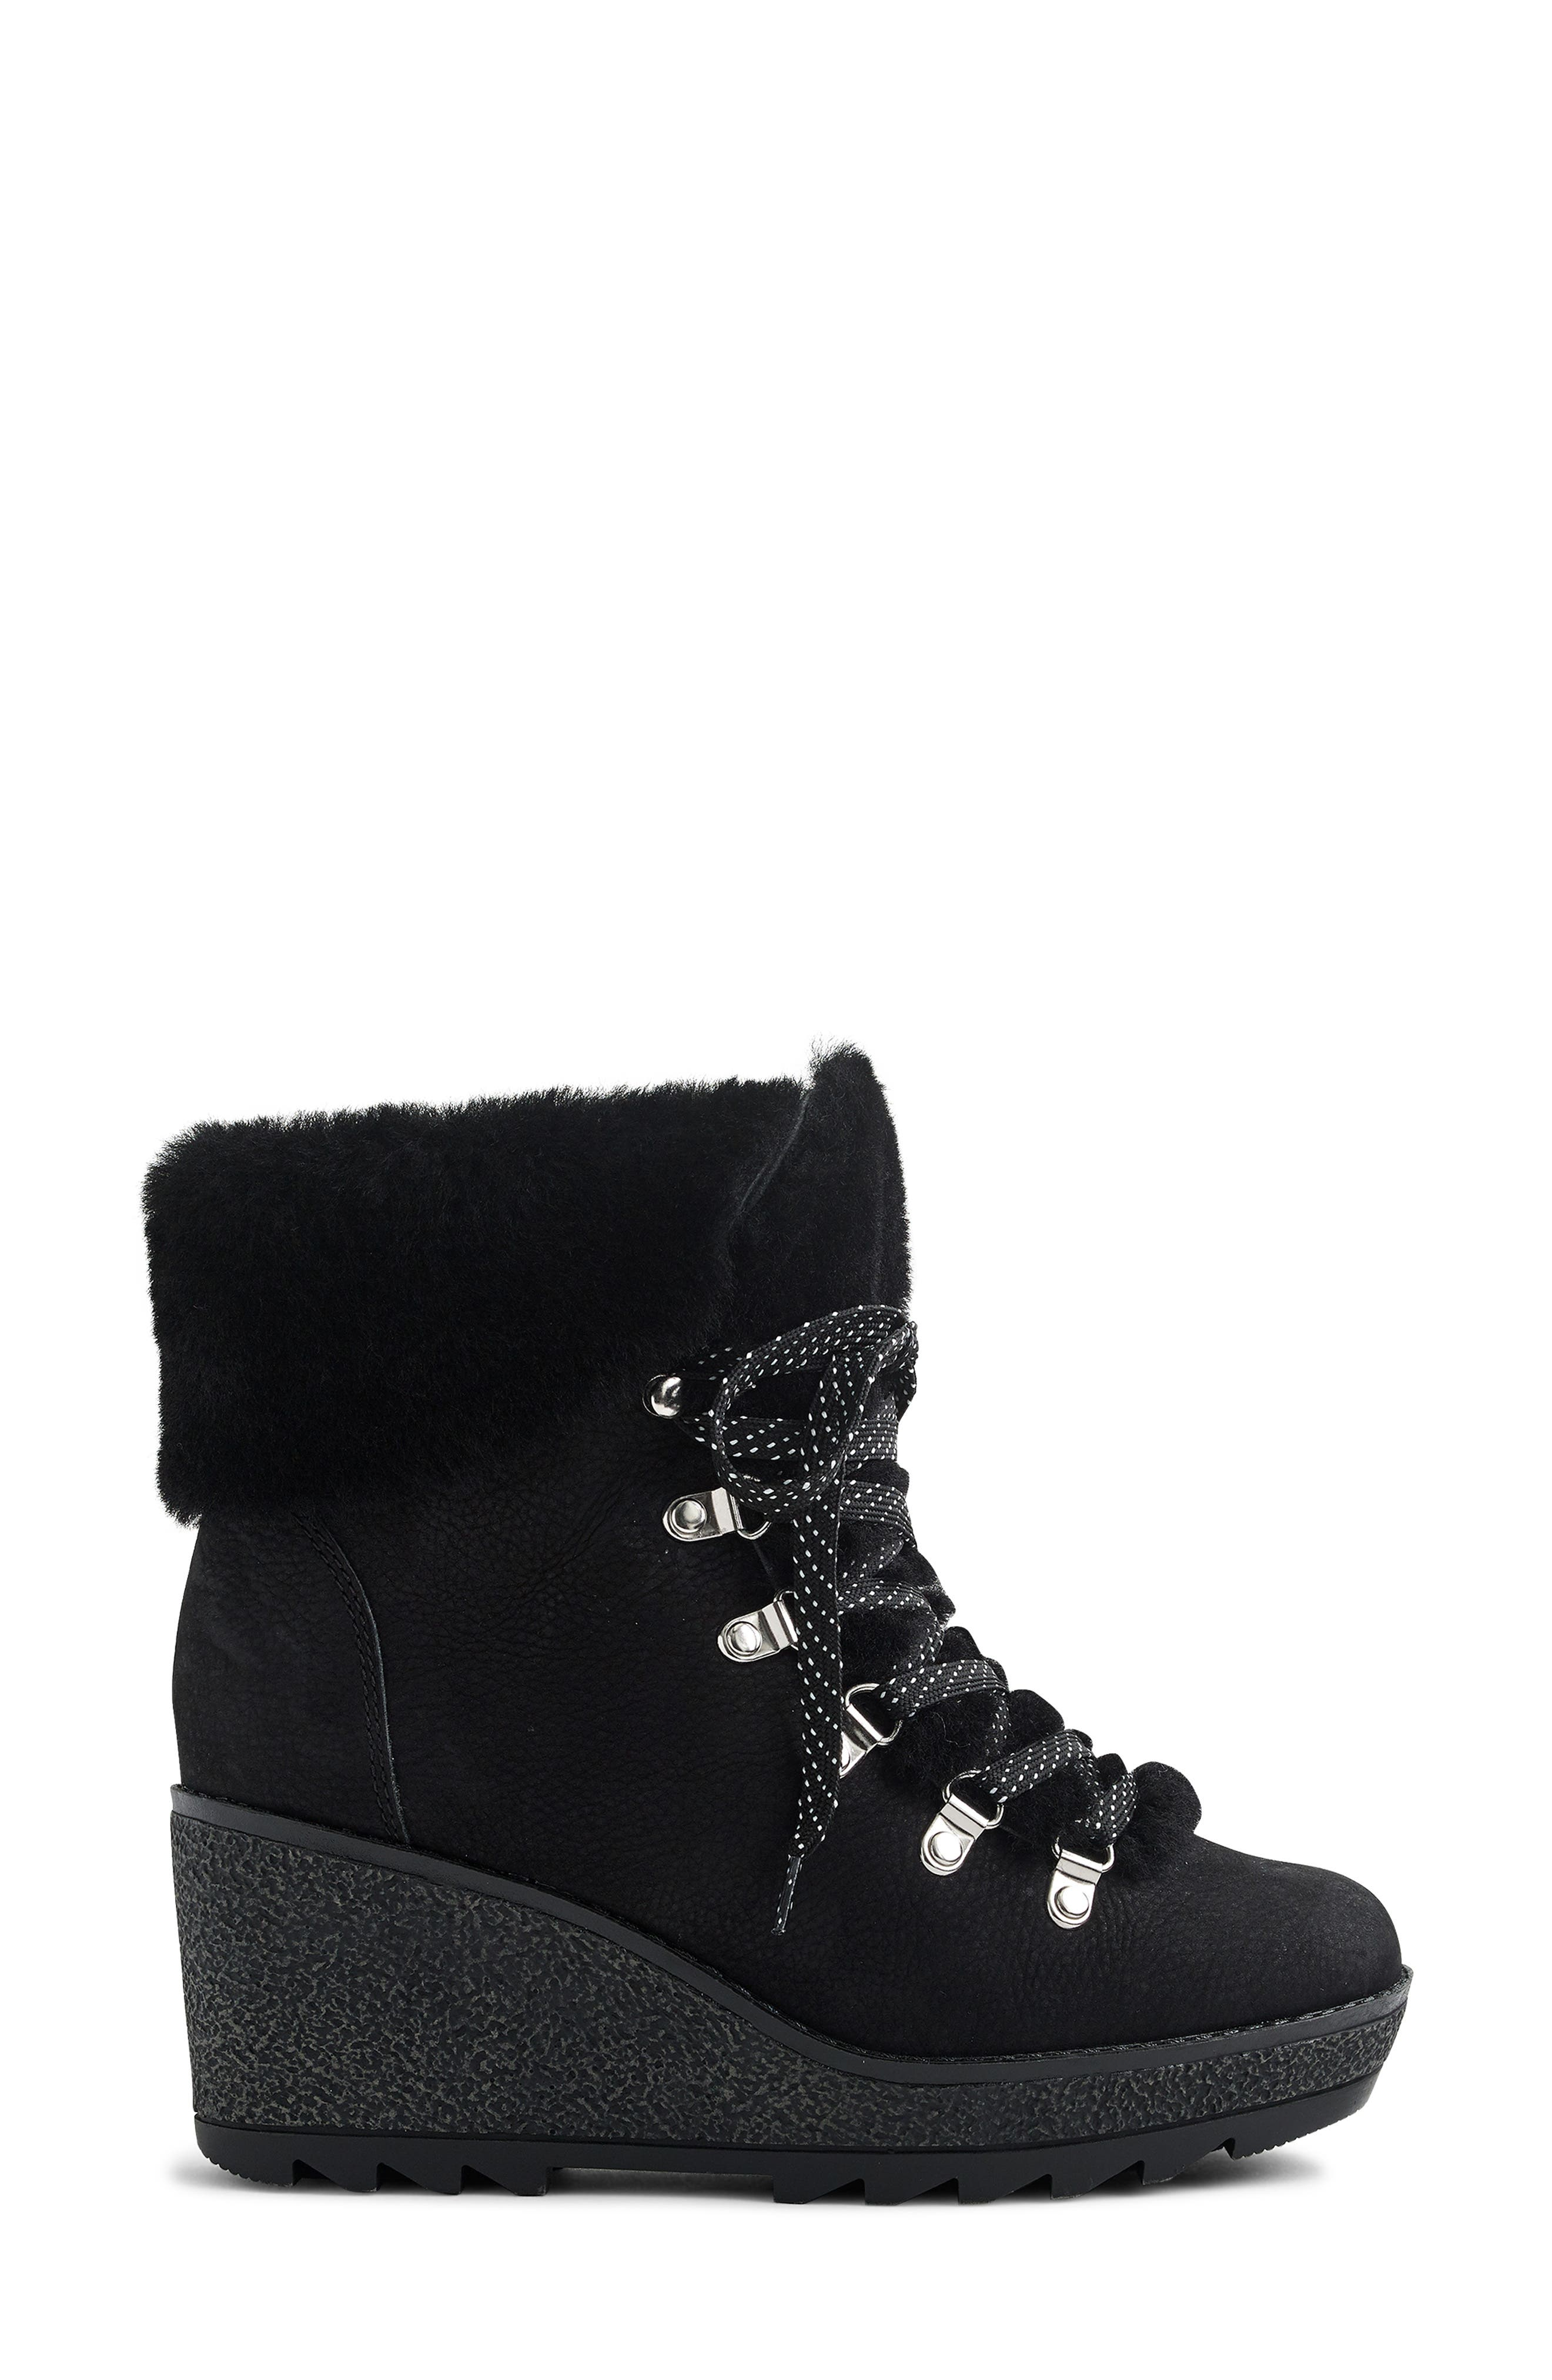 Nordic Wedge Bootie,                             Alternate thumbnail 2, color,                             BLACK LEATHER